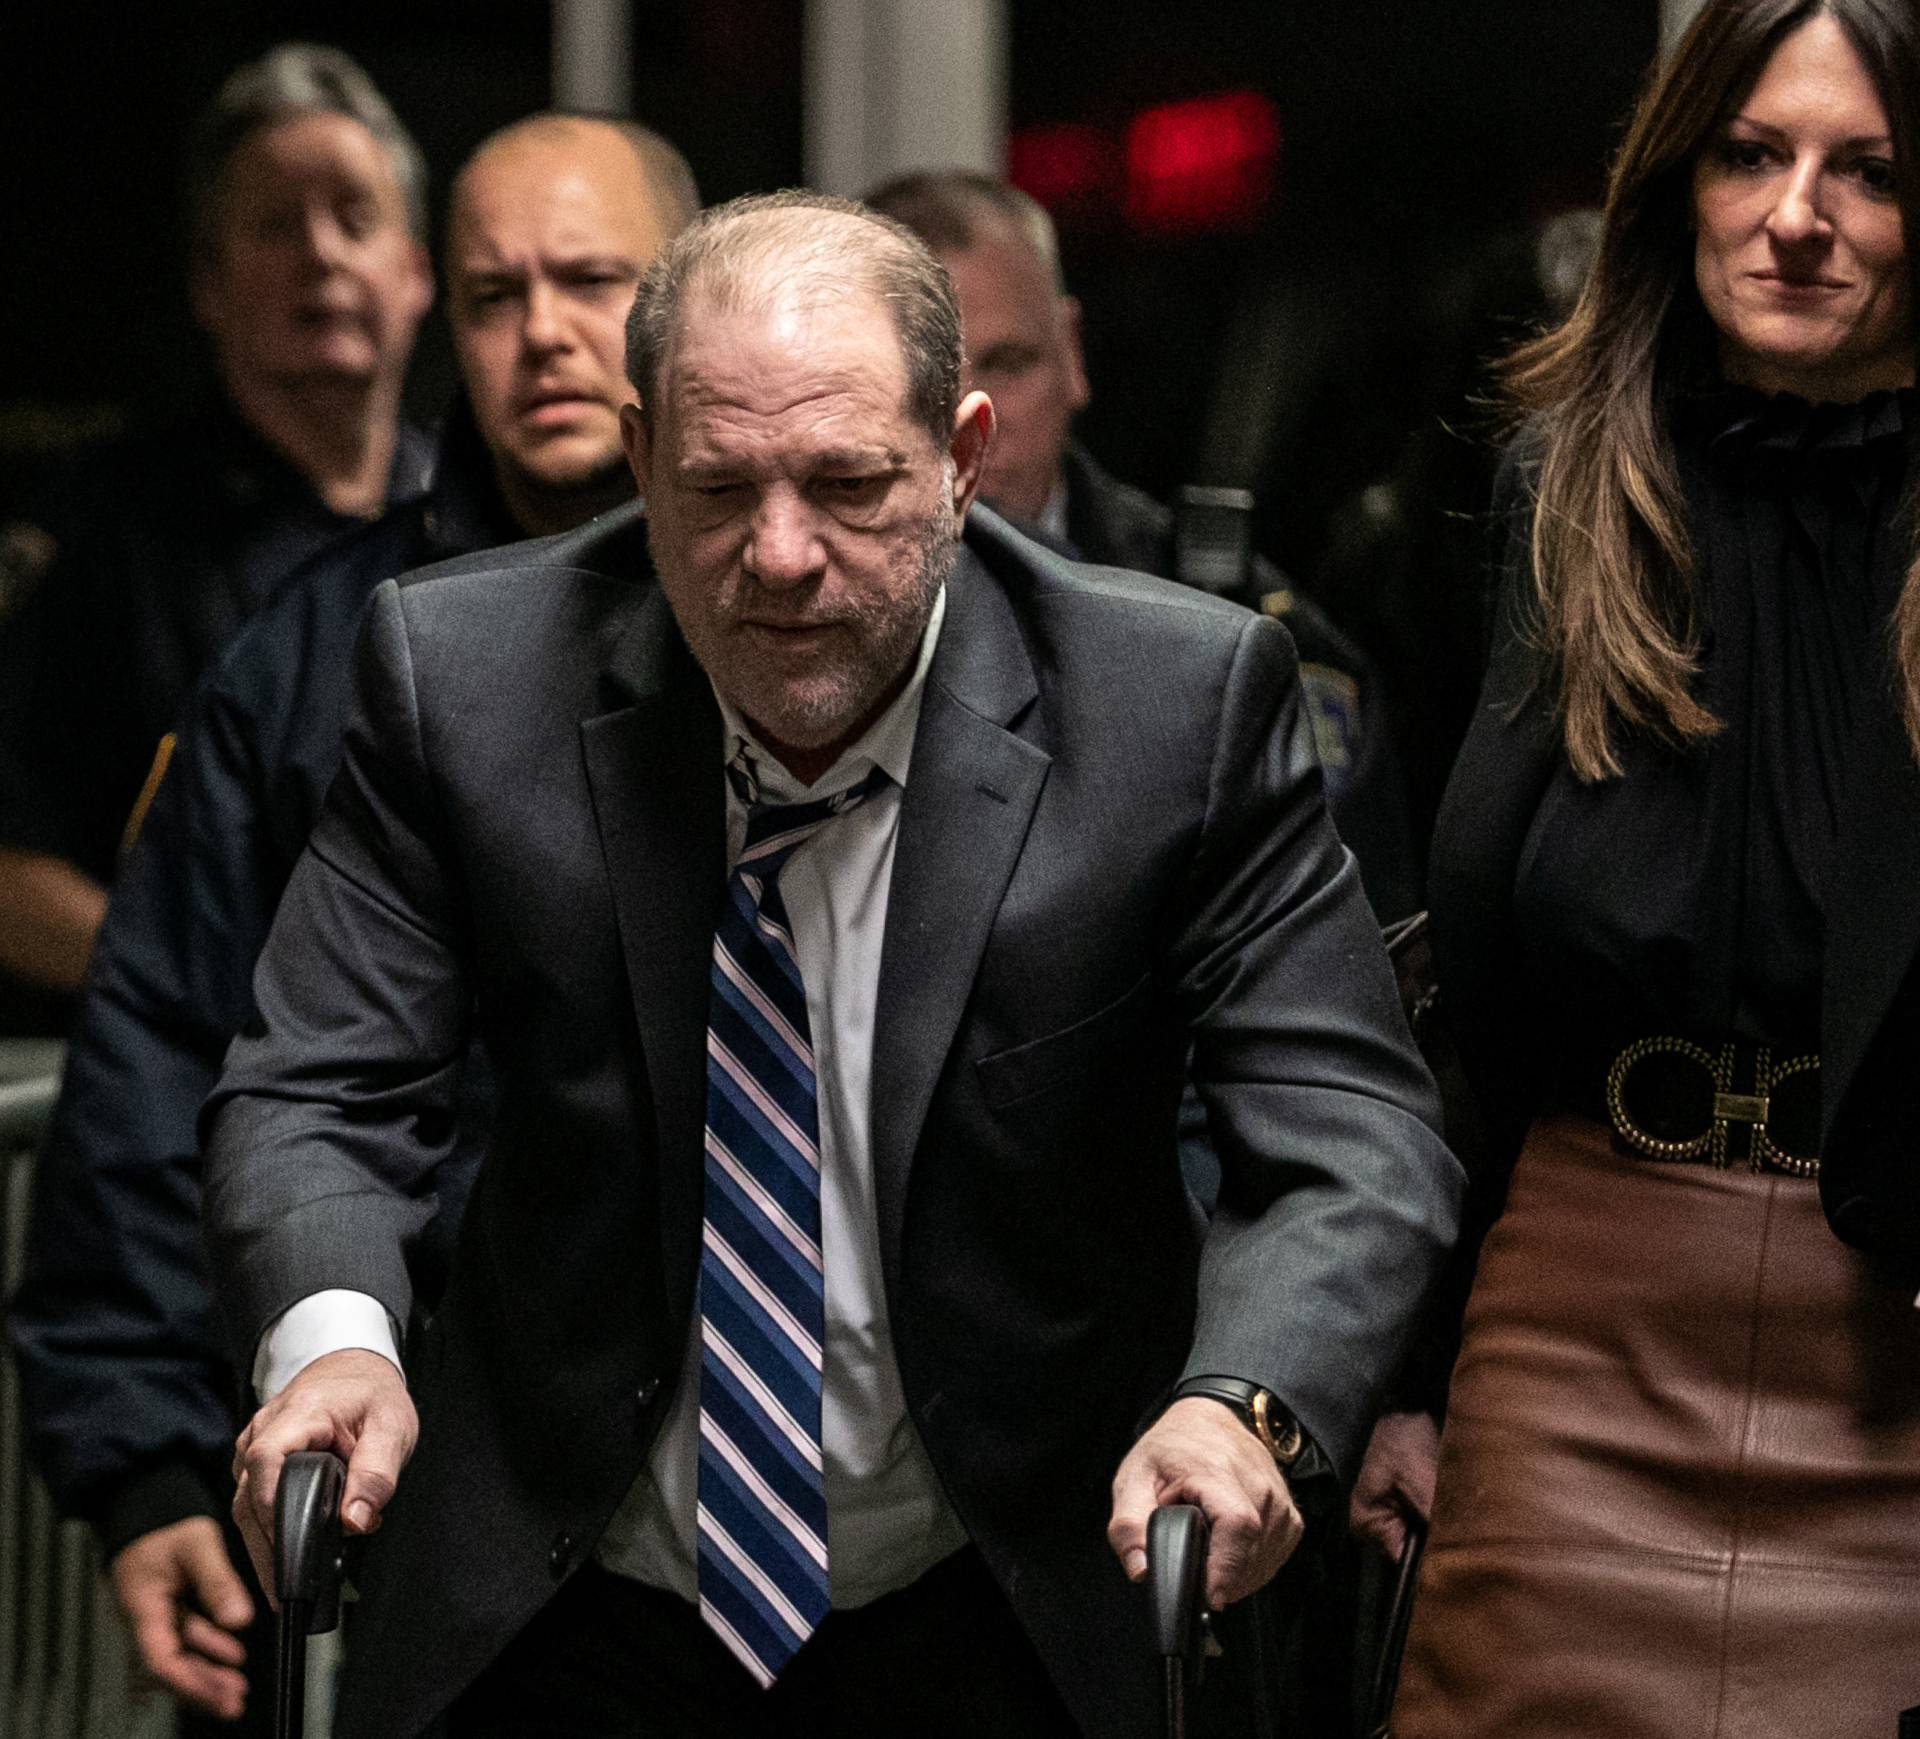 Film producer Harvey Weinstein leaves New York Criminal Court for his sexual assault trial in the Manhattan borough of New York City